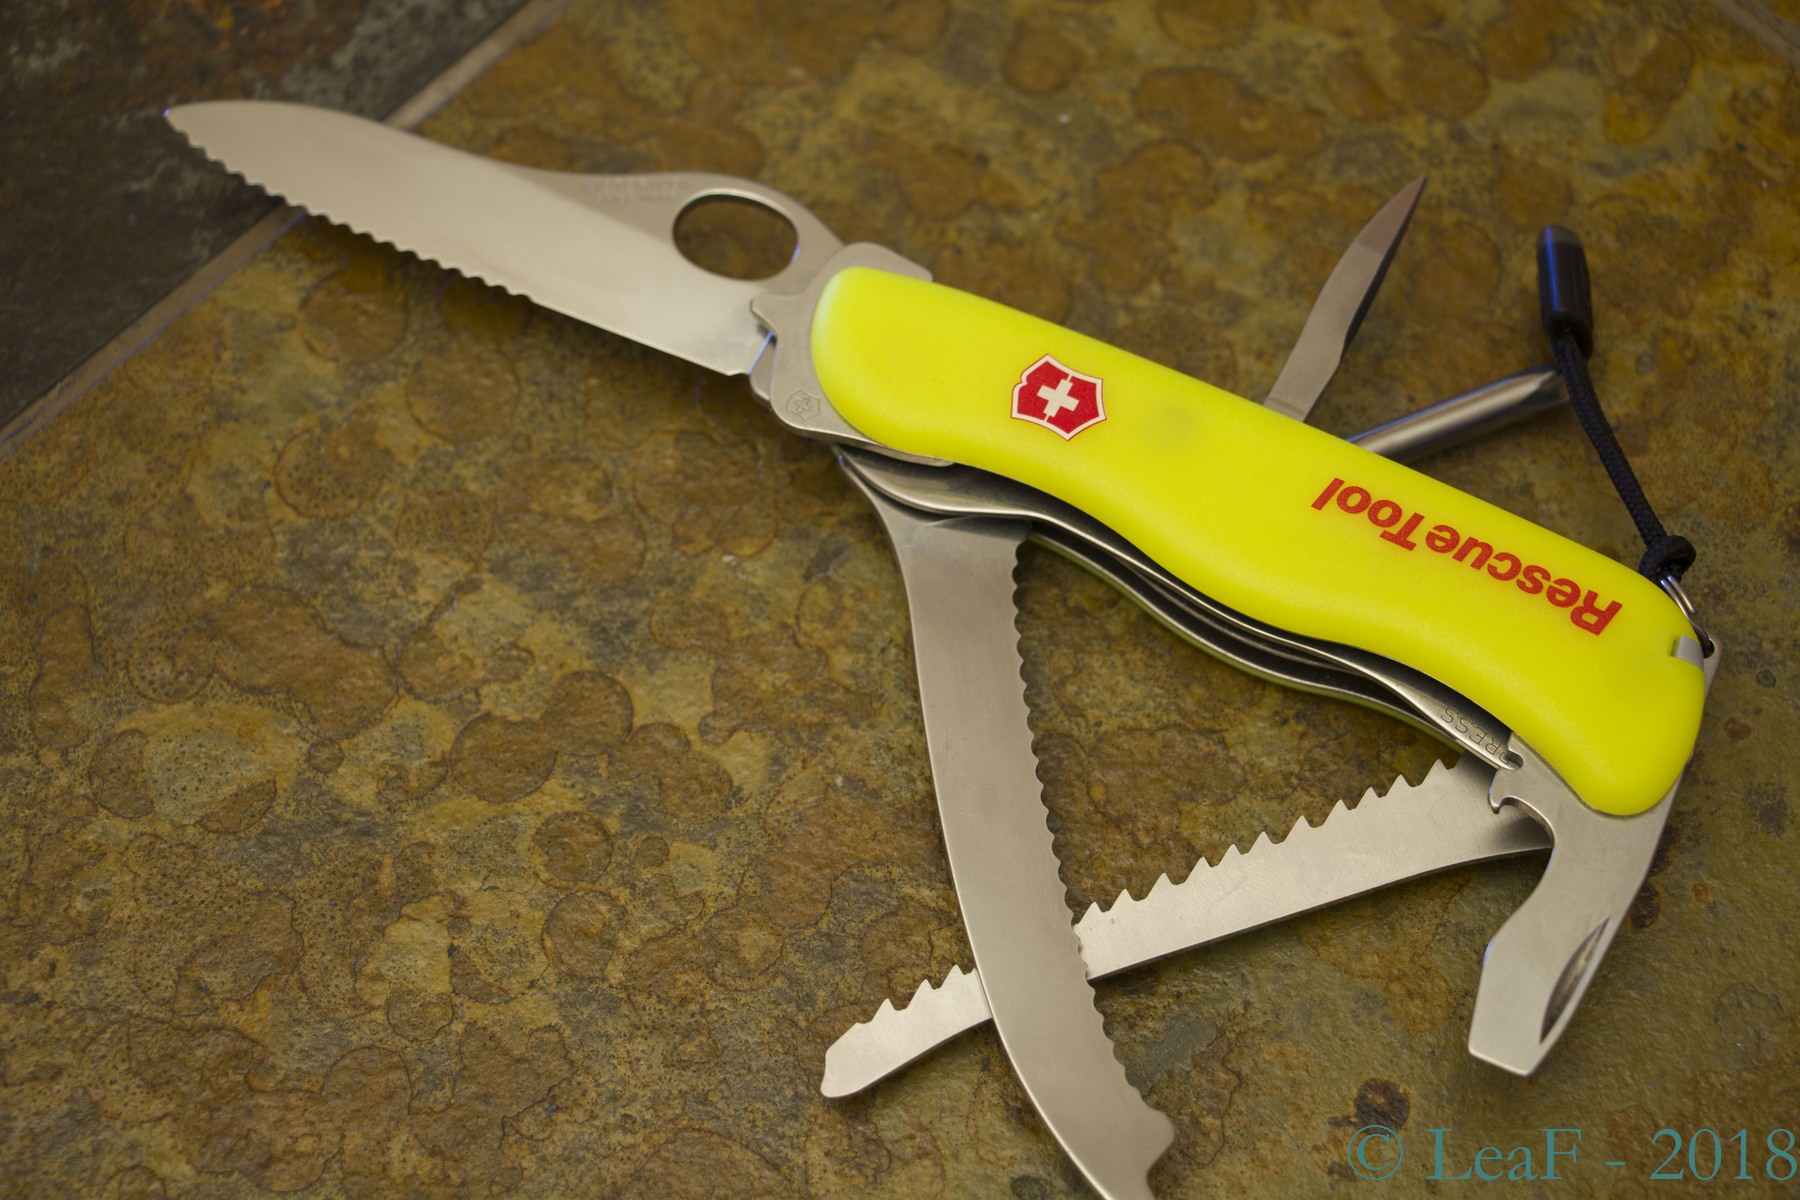 285 Rescue Tool Oh Leaf S Victorinox Knives Collection